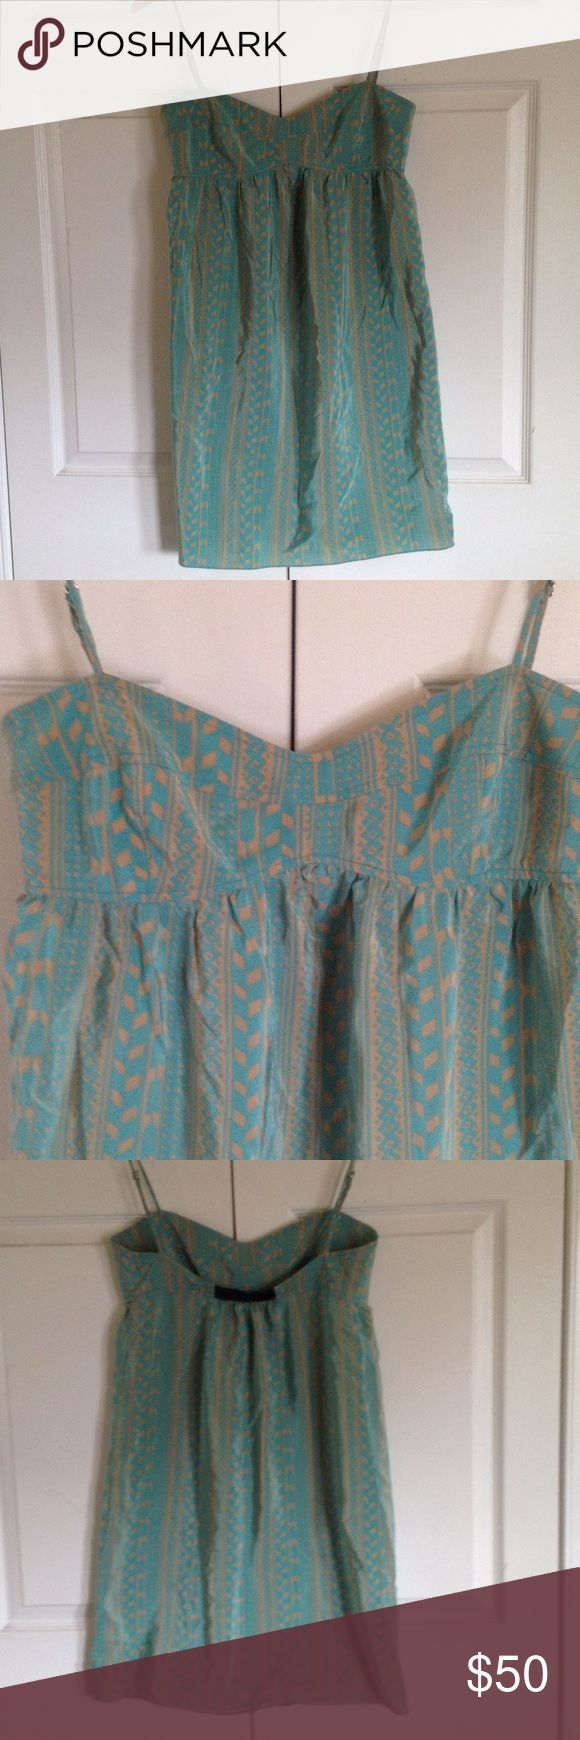 """Thomas Sires silk summer dress Size 8 Thomas Sires 100% silk turquoise and tan Aztec print dress. Size 8. Adjustable spaghetti straps and elastic at back for added comfort. Fitted chest with stitched detail. Empire waist. Overall length is 34"""" and chest measures 16 1/2"""" flat. Gently used. Excellent condition. Thomas Sires Dresses"""